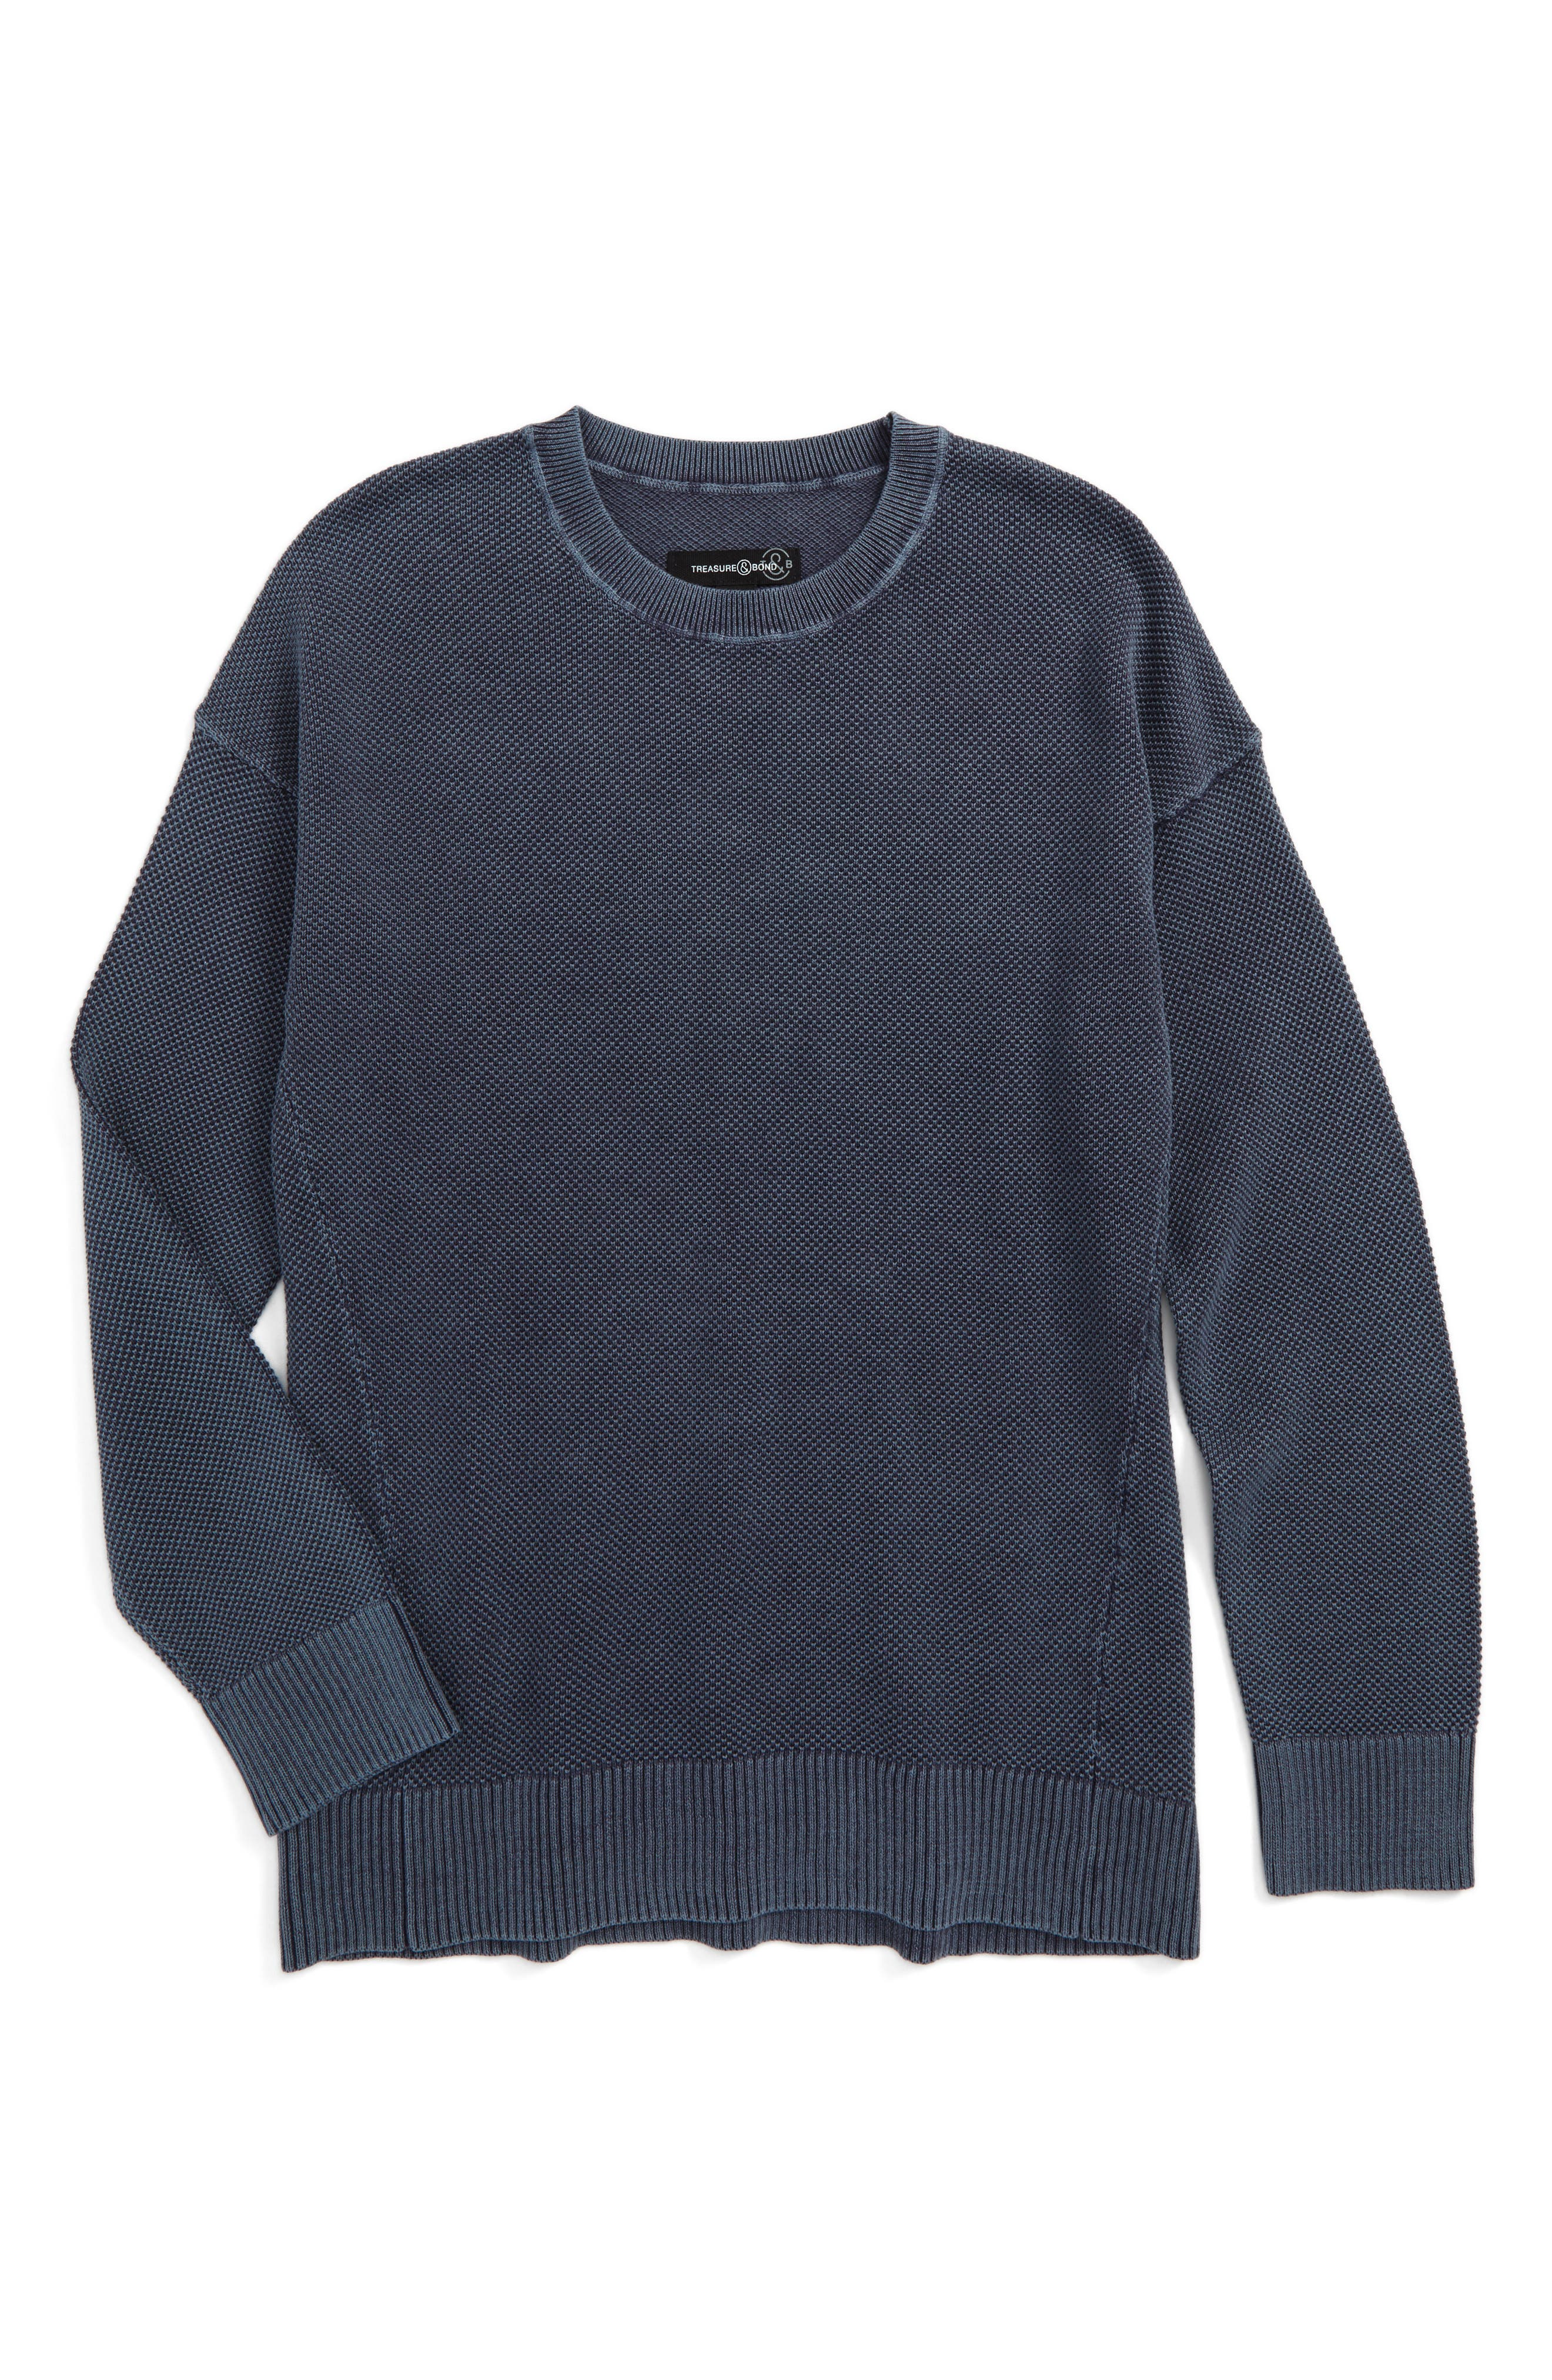 Waffle Knit Sweater,                         Main,                         color, Blue Chinoise